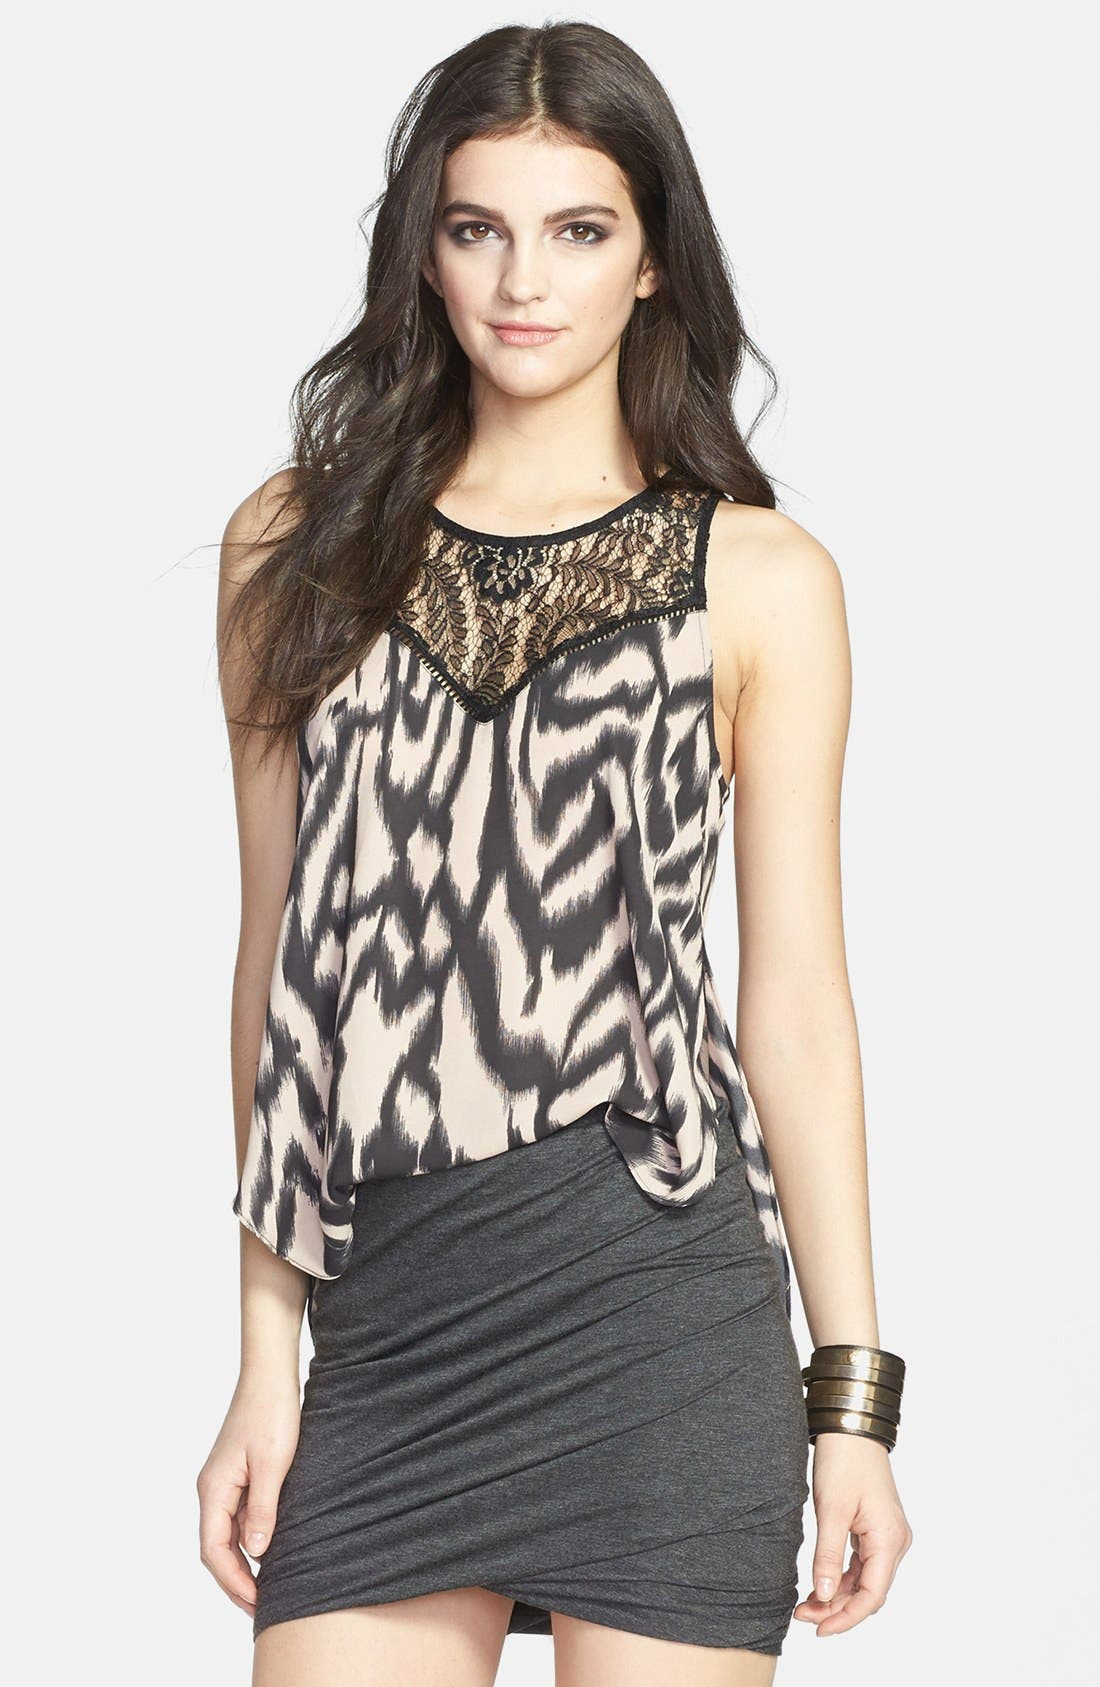 Alternate Image 1 Selected - ASTR Print Lace Mixed Media Tank